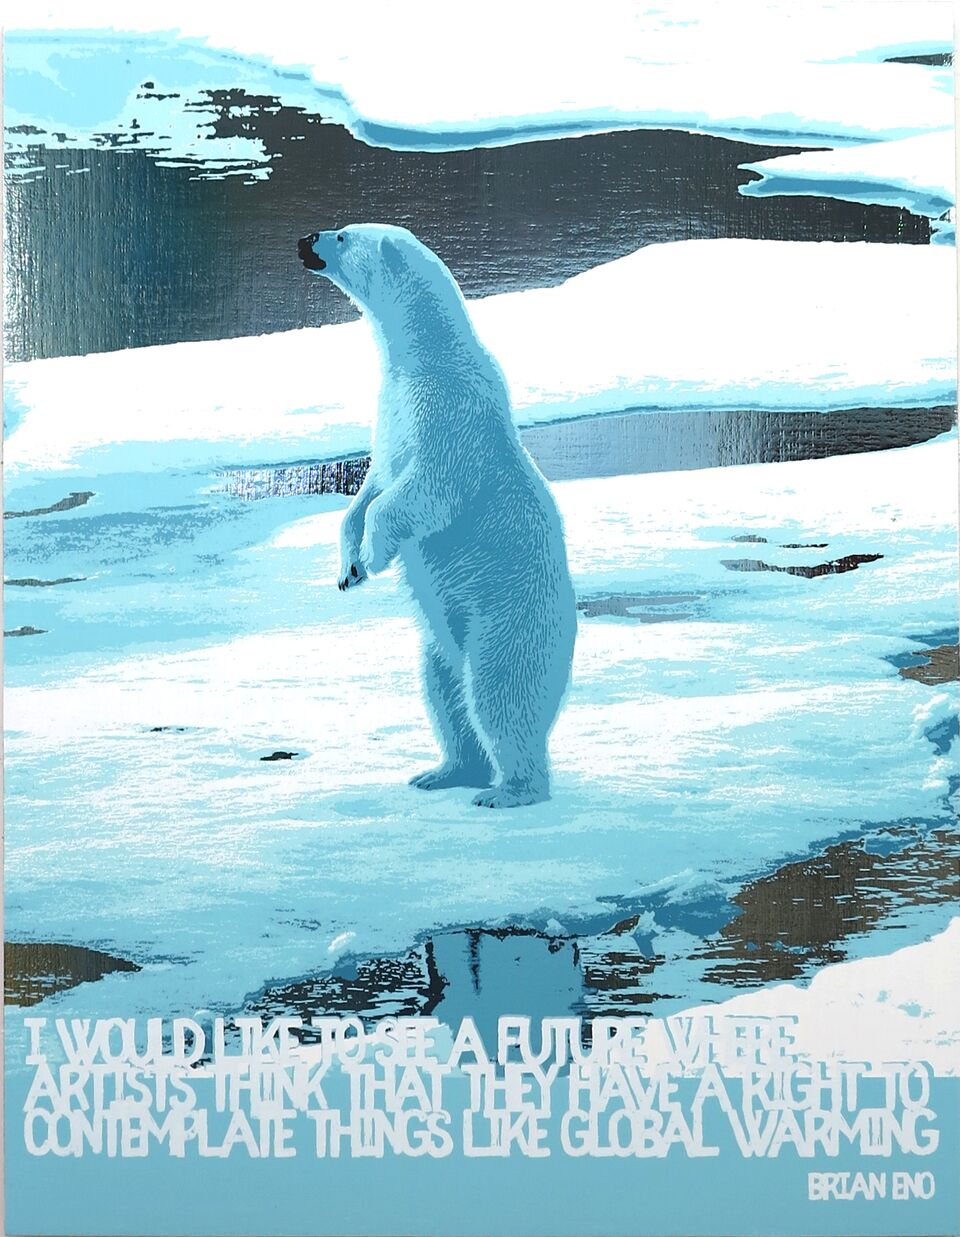 Polar Bear/Global Warming (Brian Eno)